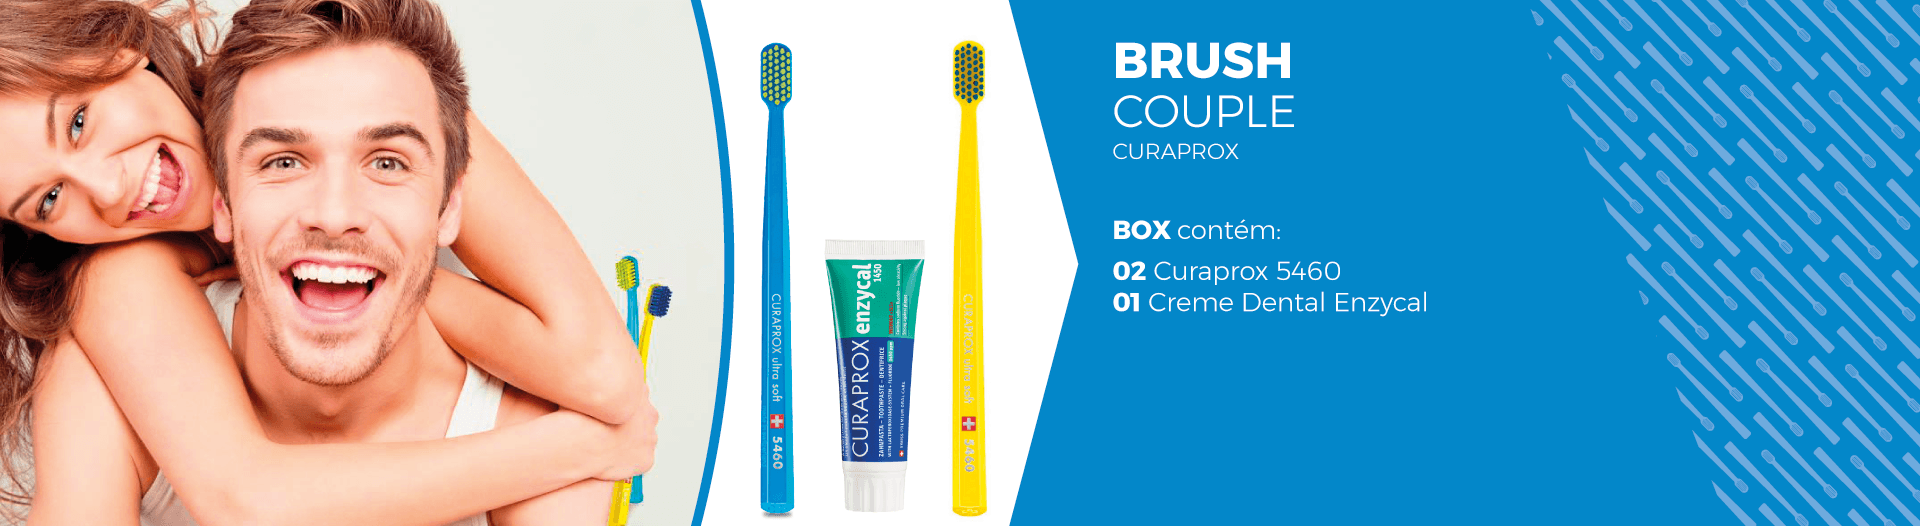 Brush Couple